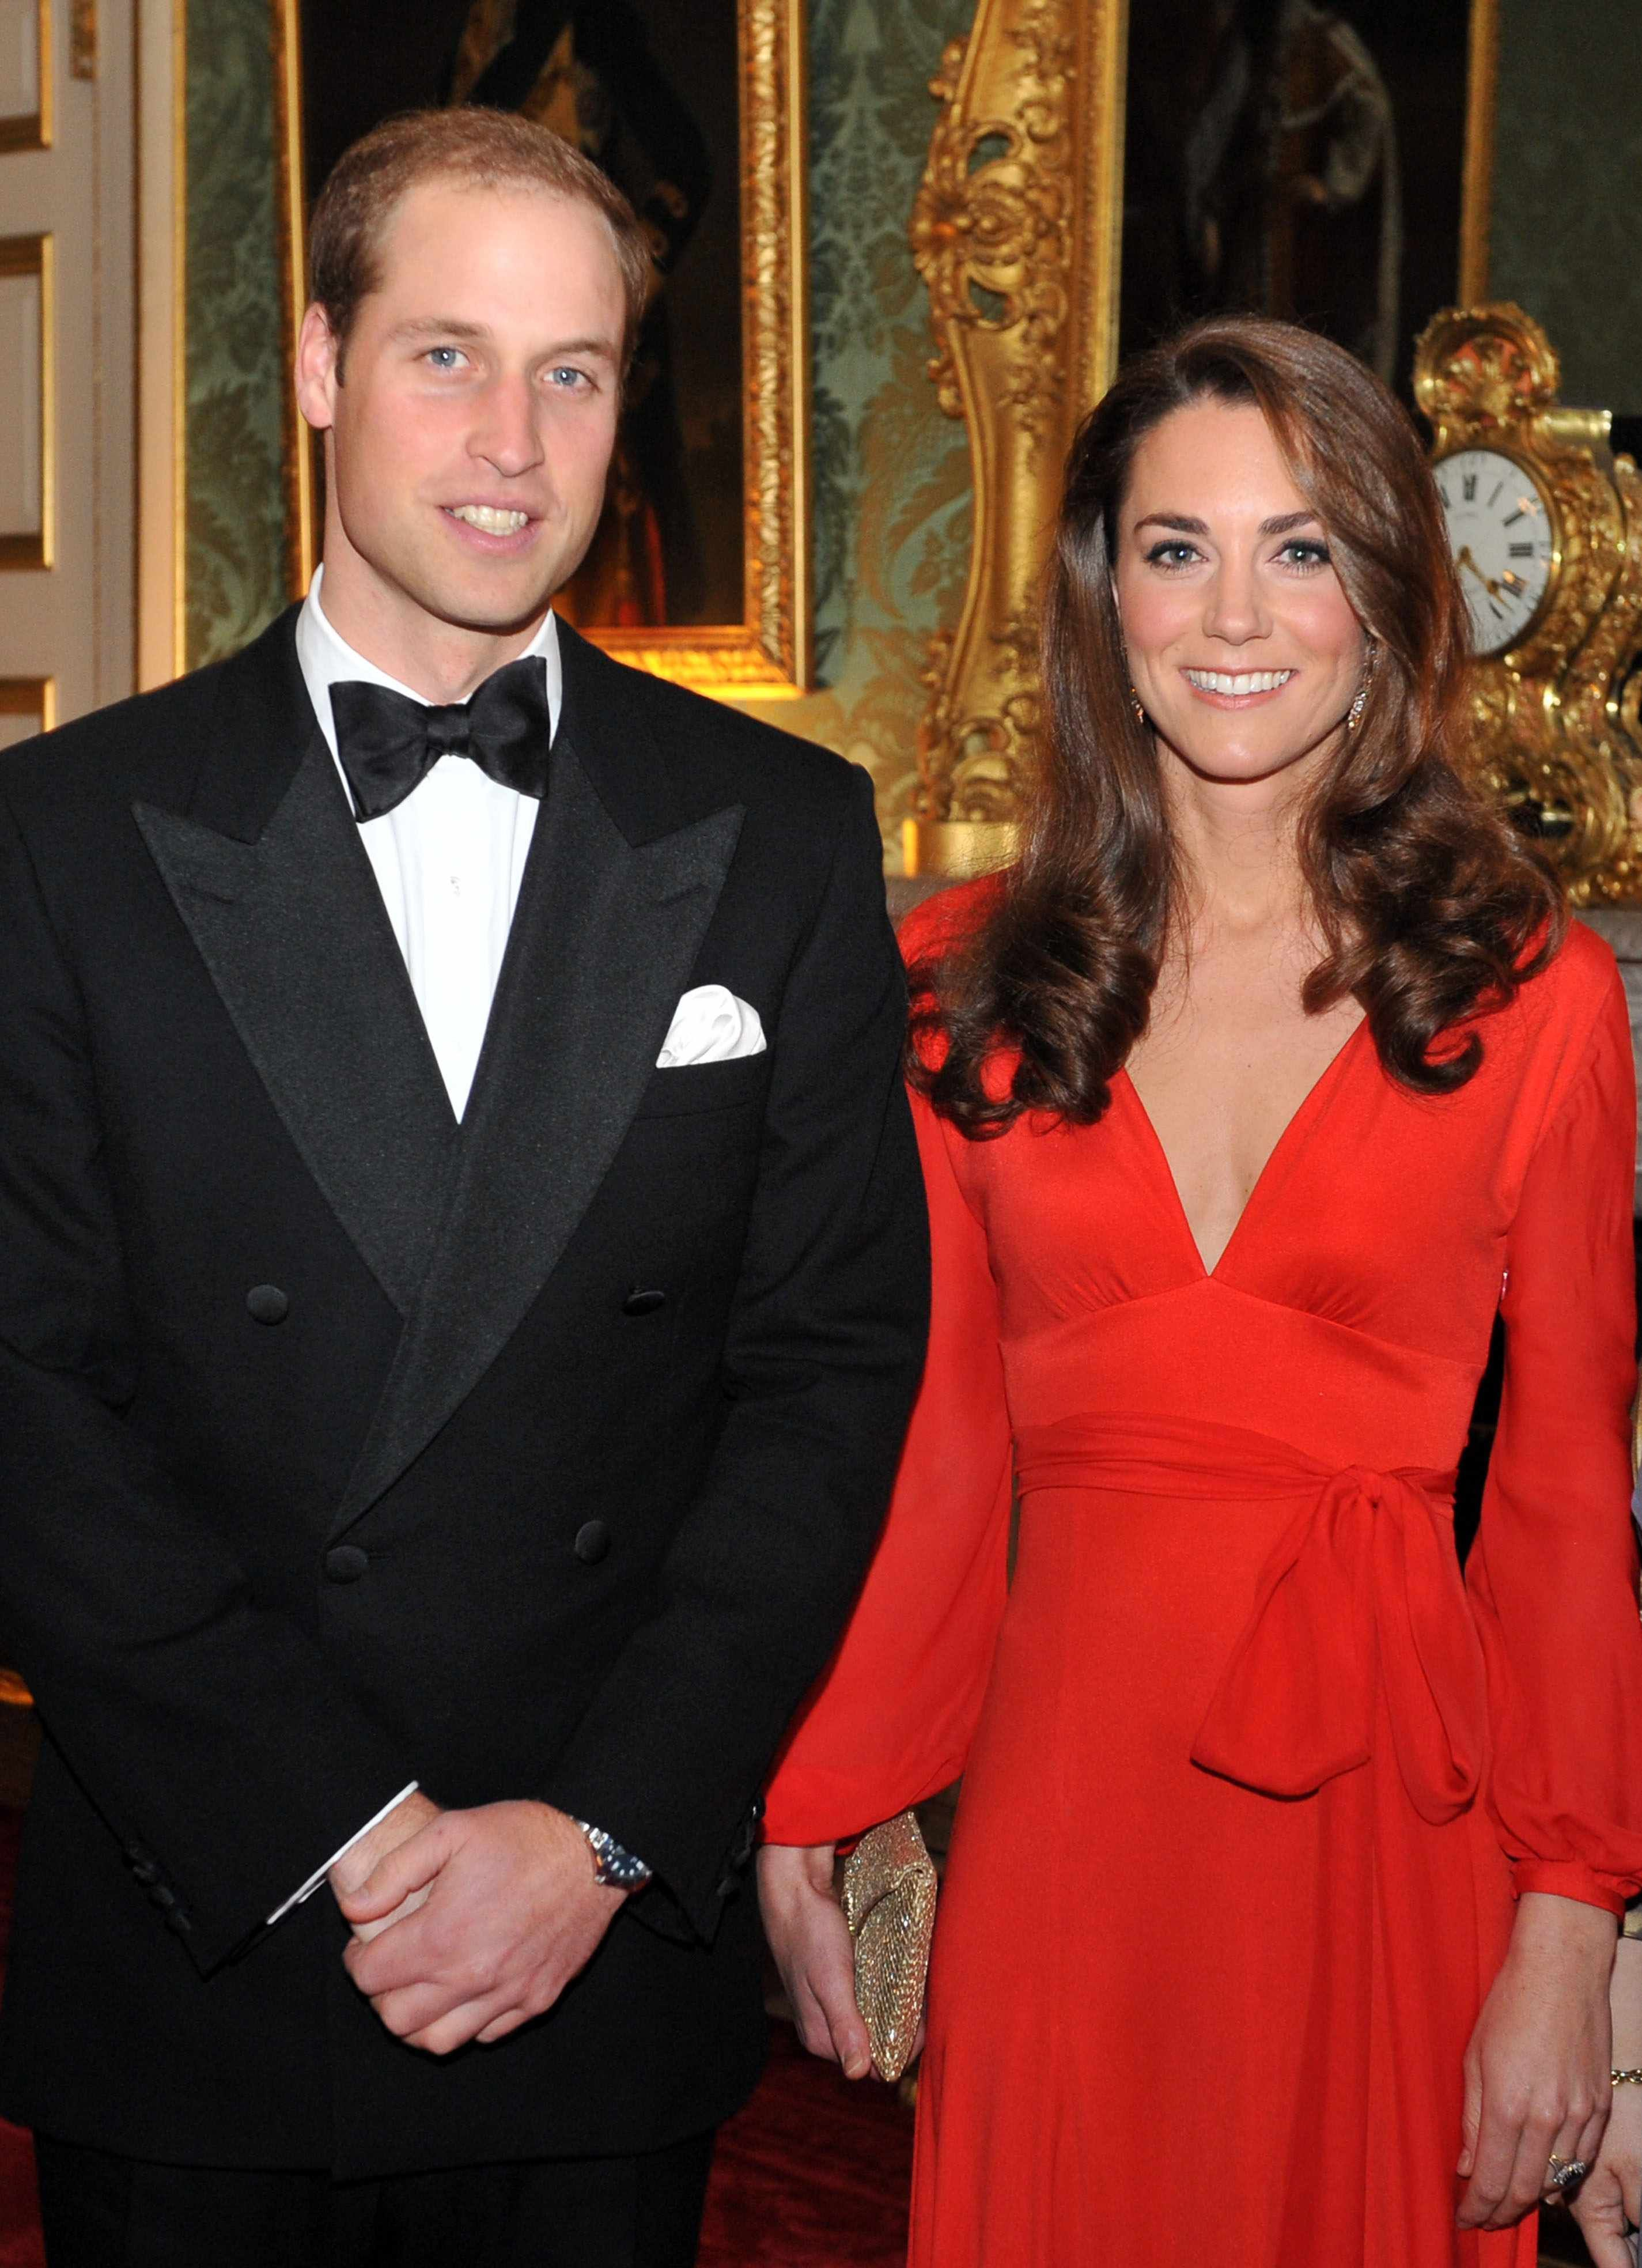 Pin By Robin Clark On Princess Kate In 2020 Prince William And Kate Duchess Kate Prince William And Catherine